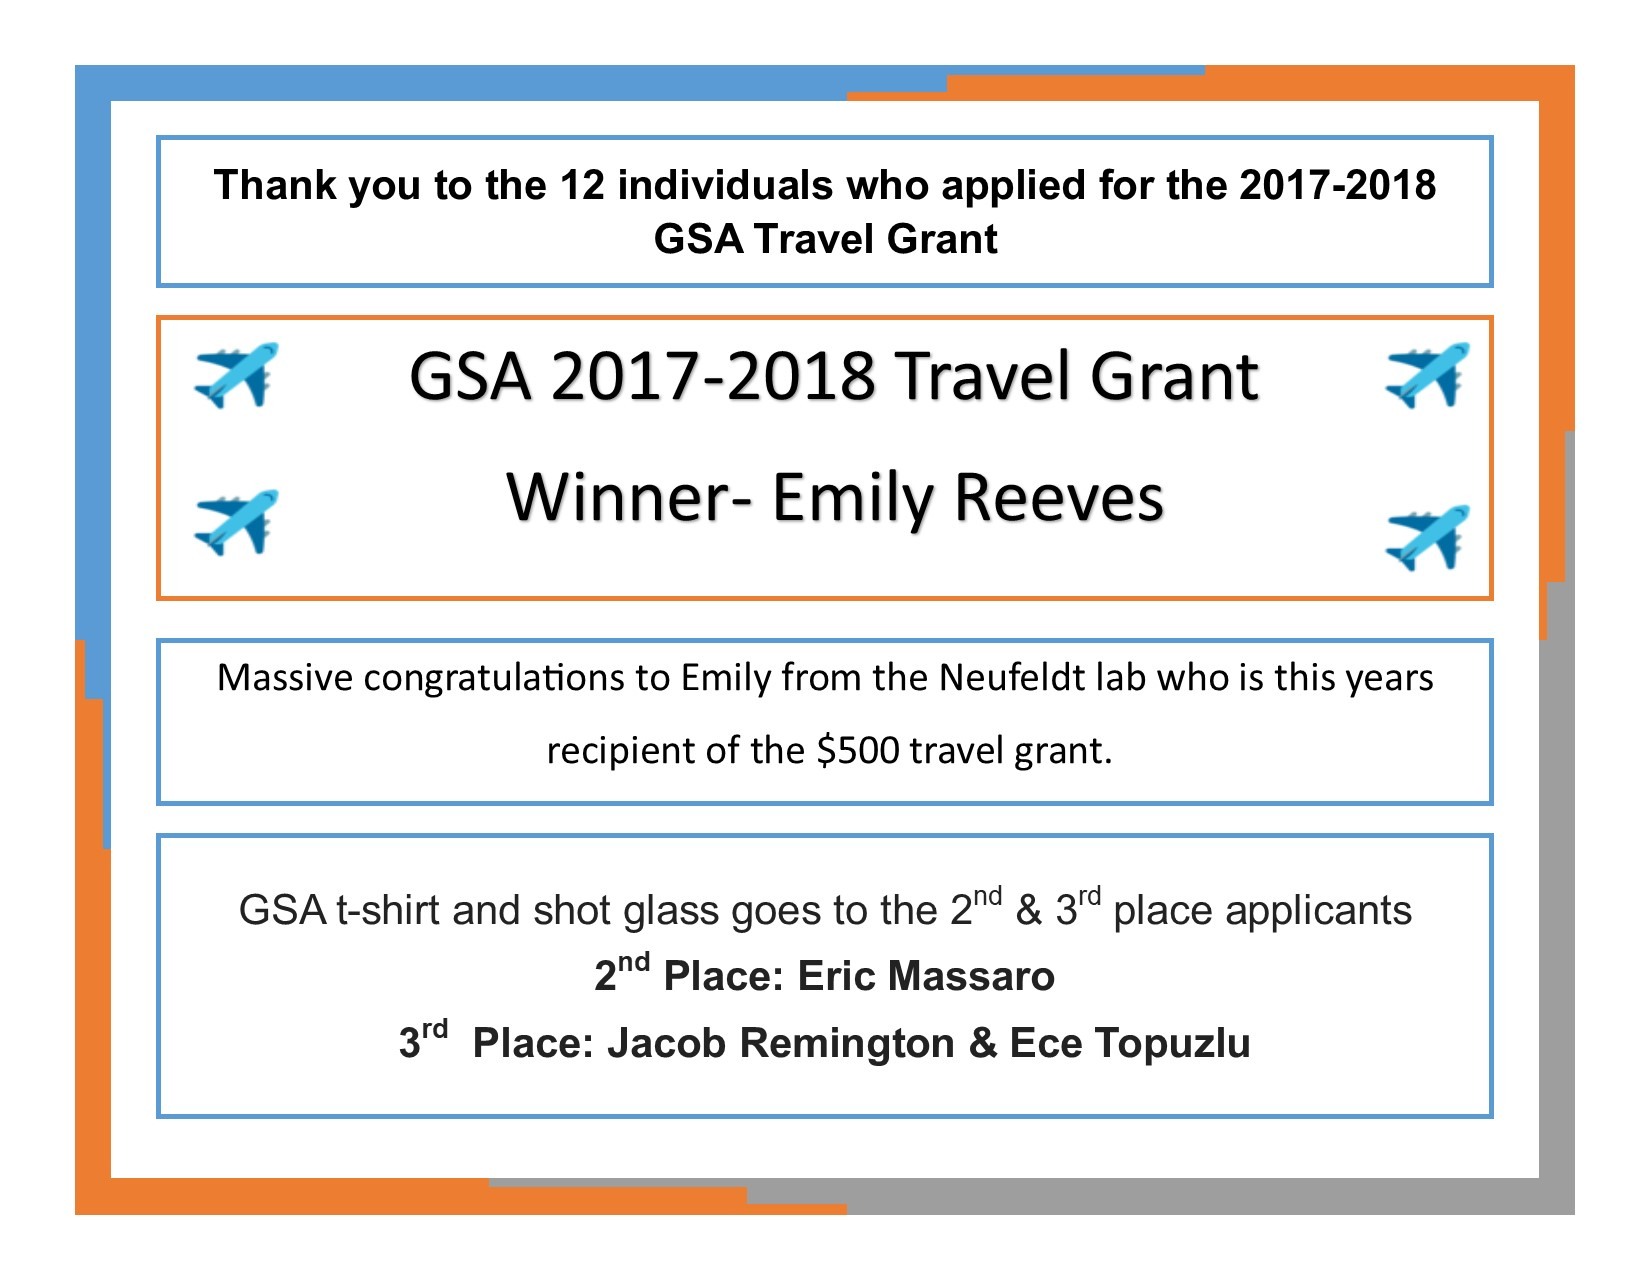 Travel grant winner 1st place Emily Reeves